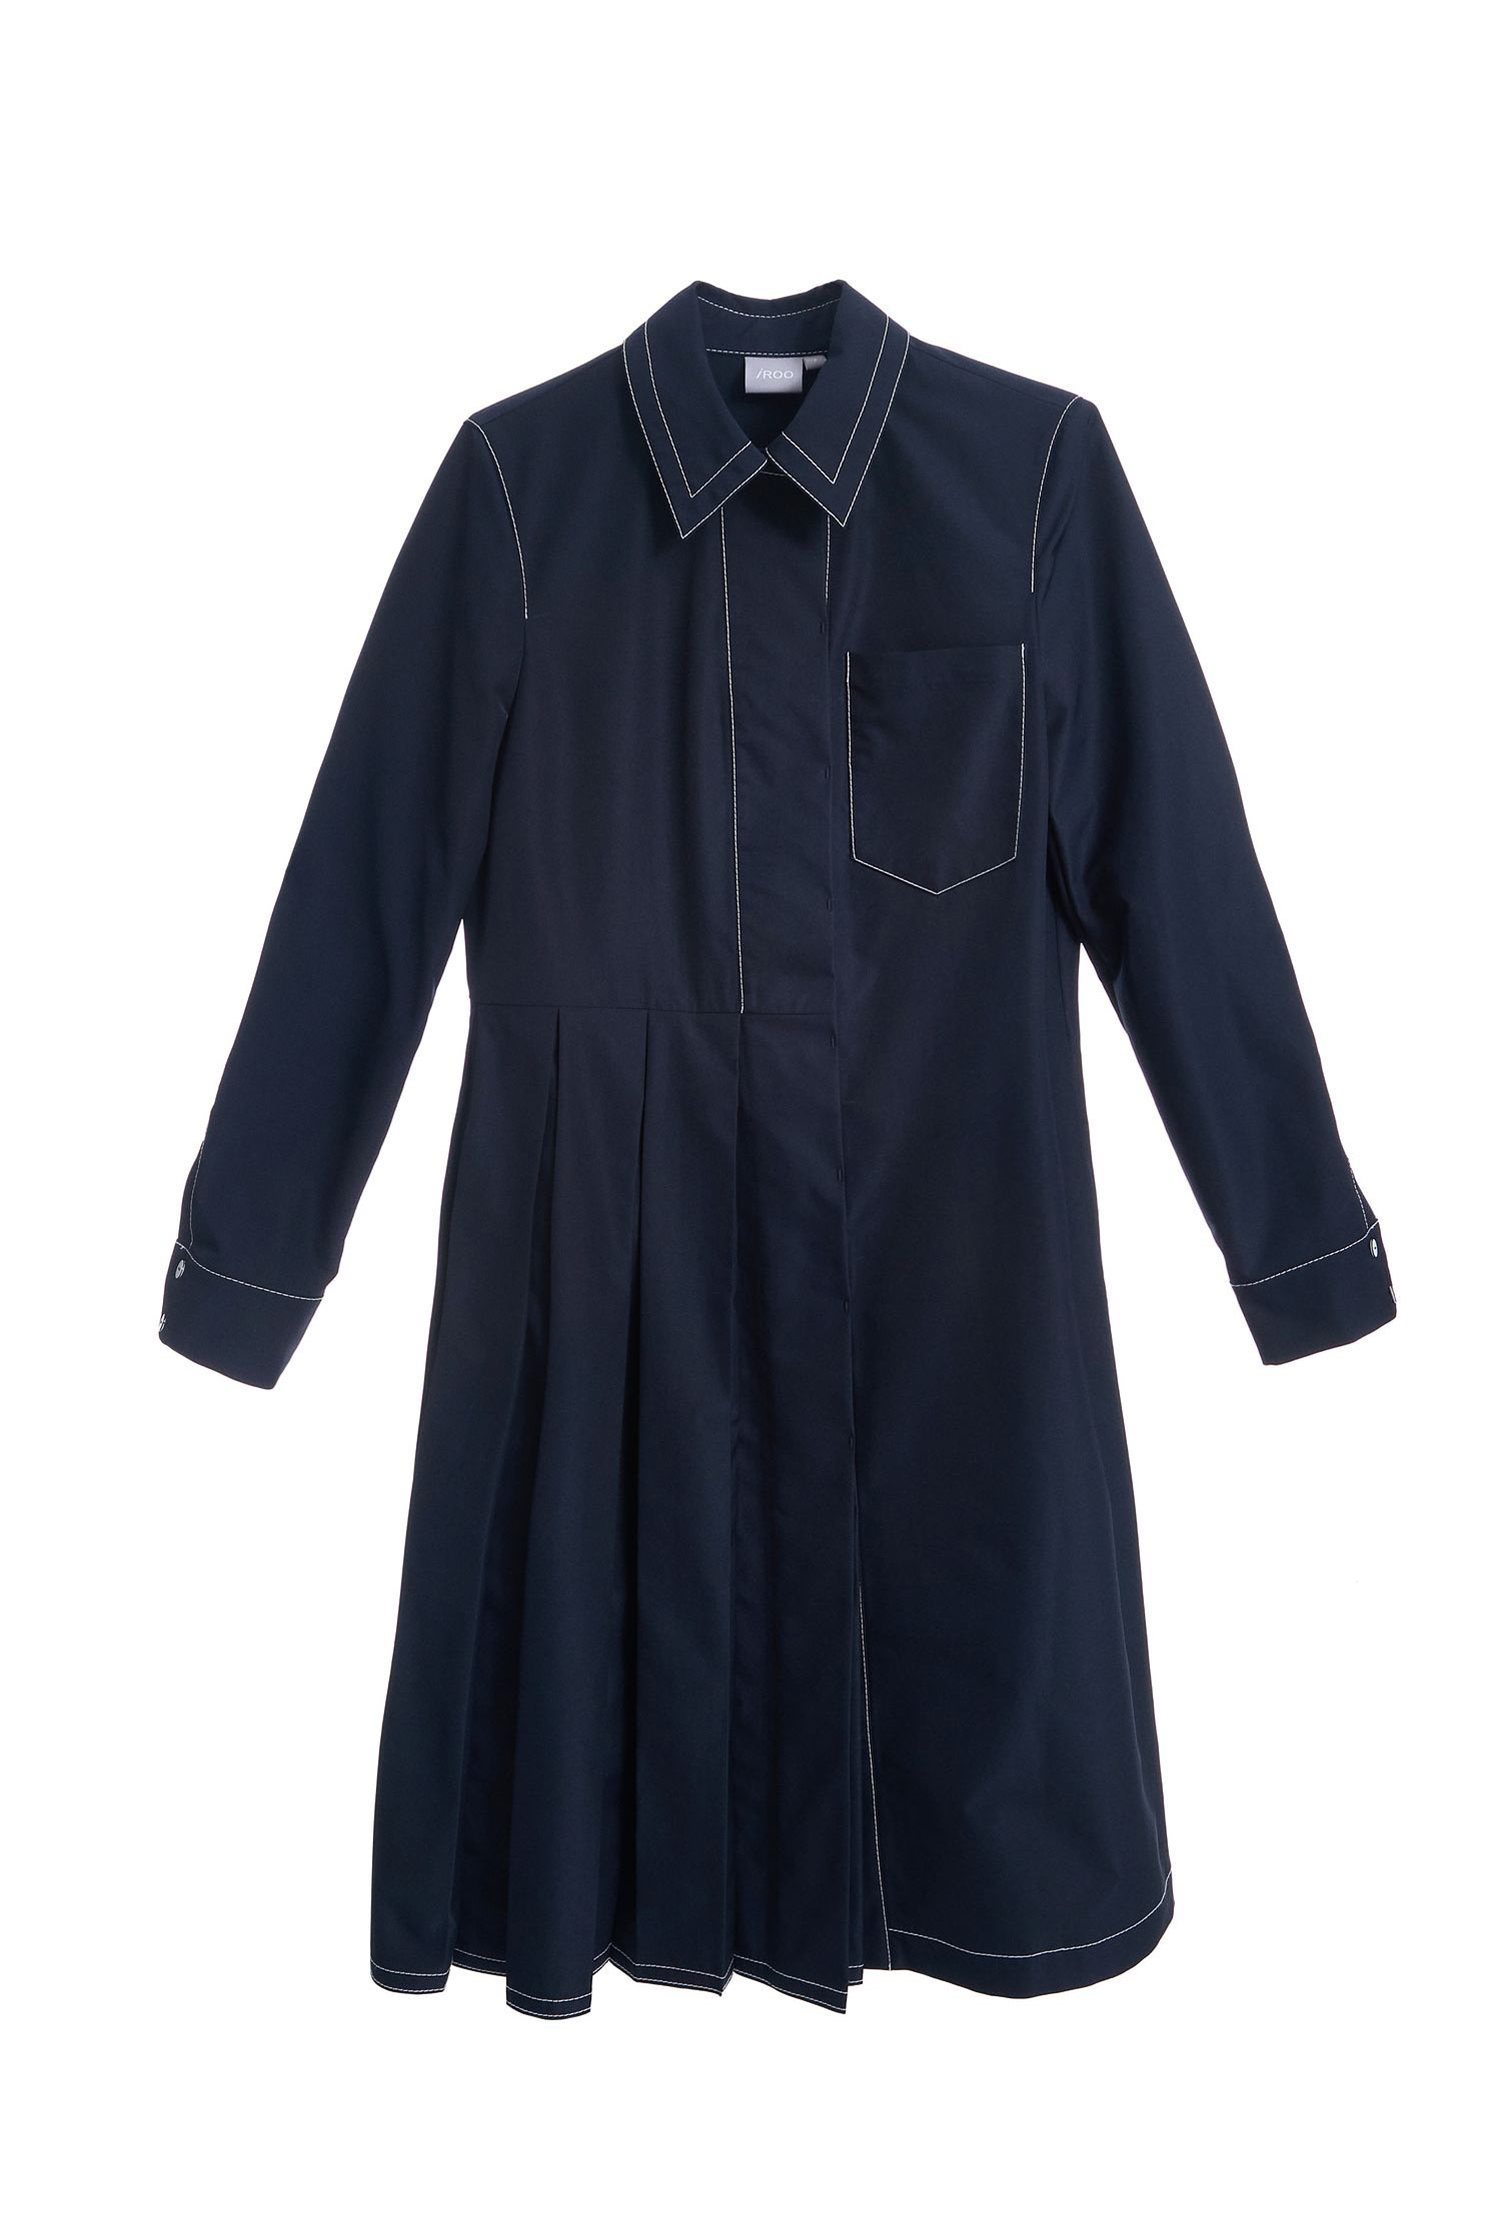 Asymmetrical design shirt long-sleeved dress